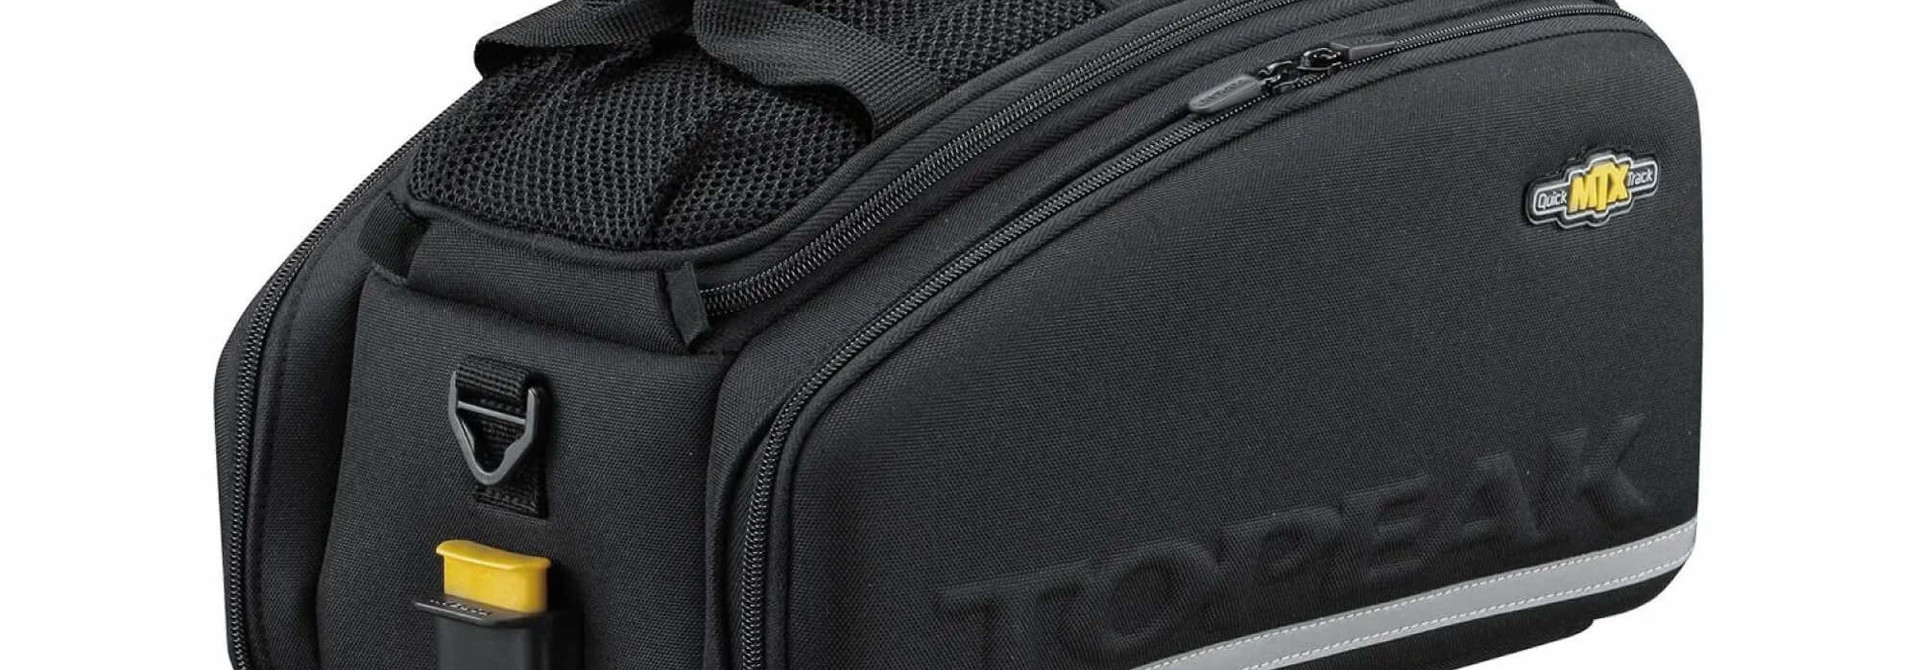 MTX Trunk Bag EXP Expandable